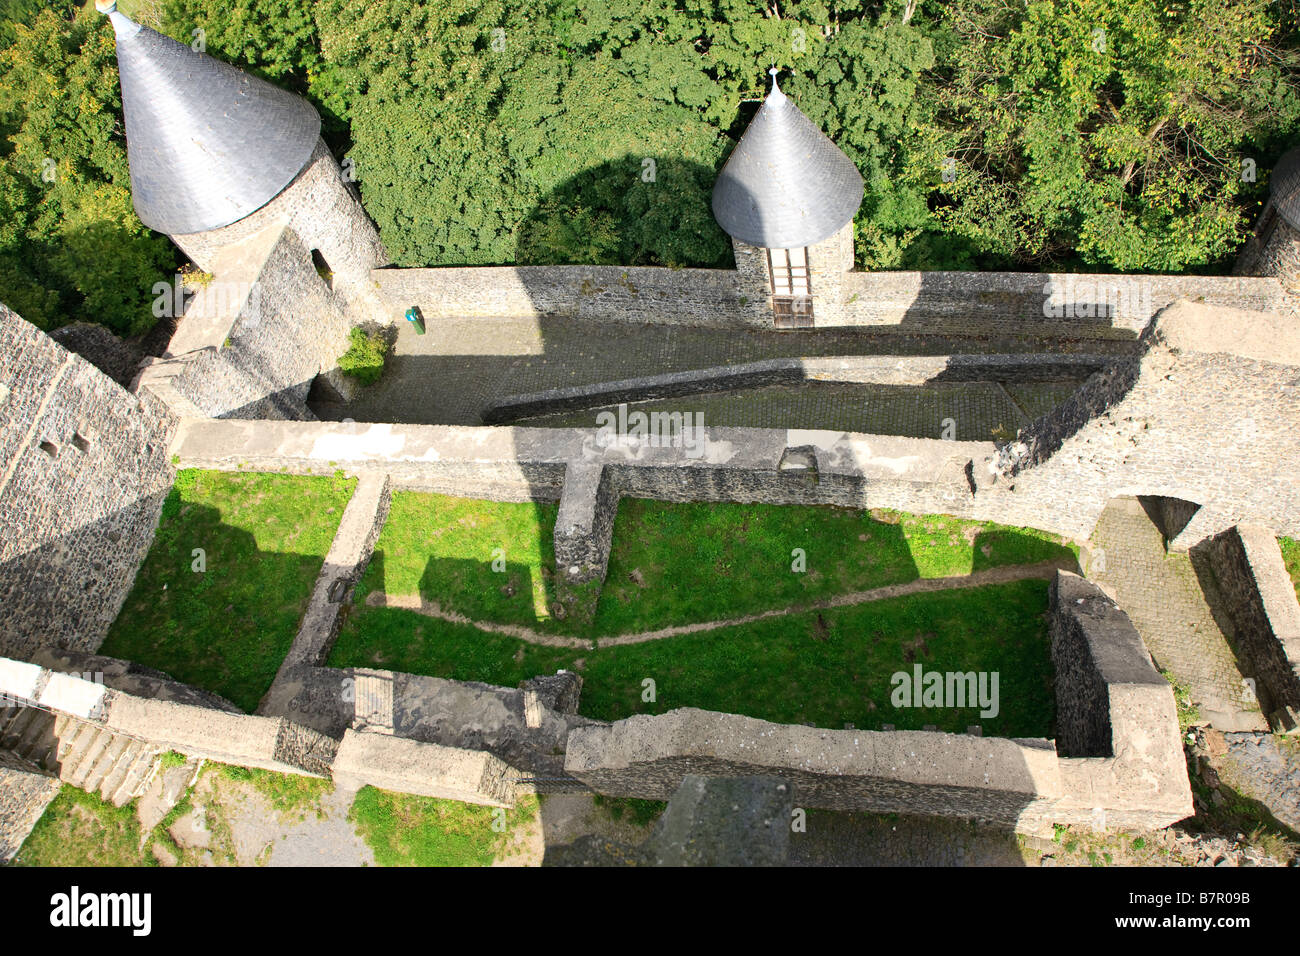 Ruin of the Nürburg Castle in the middle of the Nürburgring in the city of Nürburg, Rheinland-Pfalz, - Stock Image